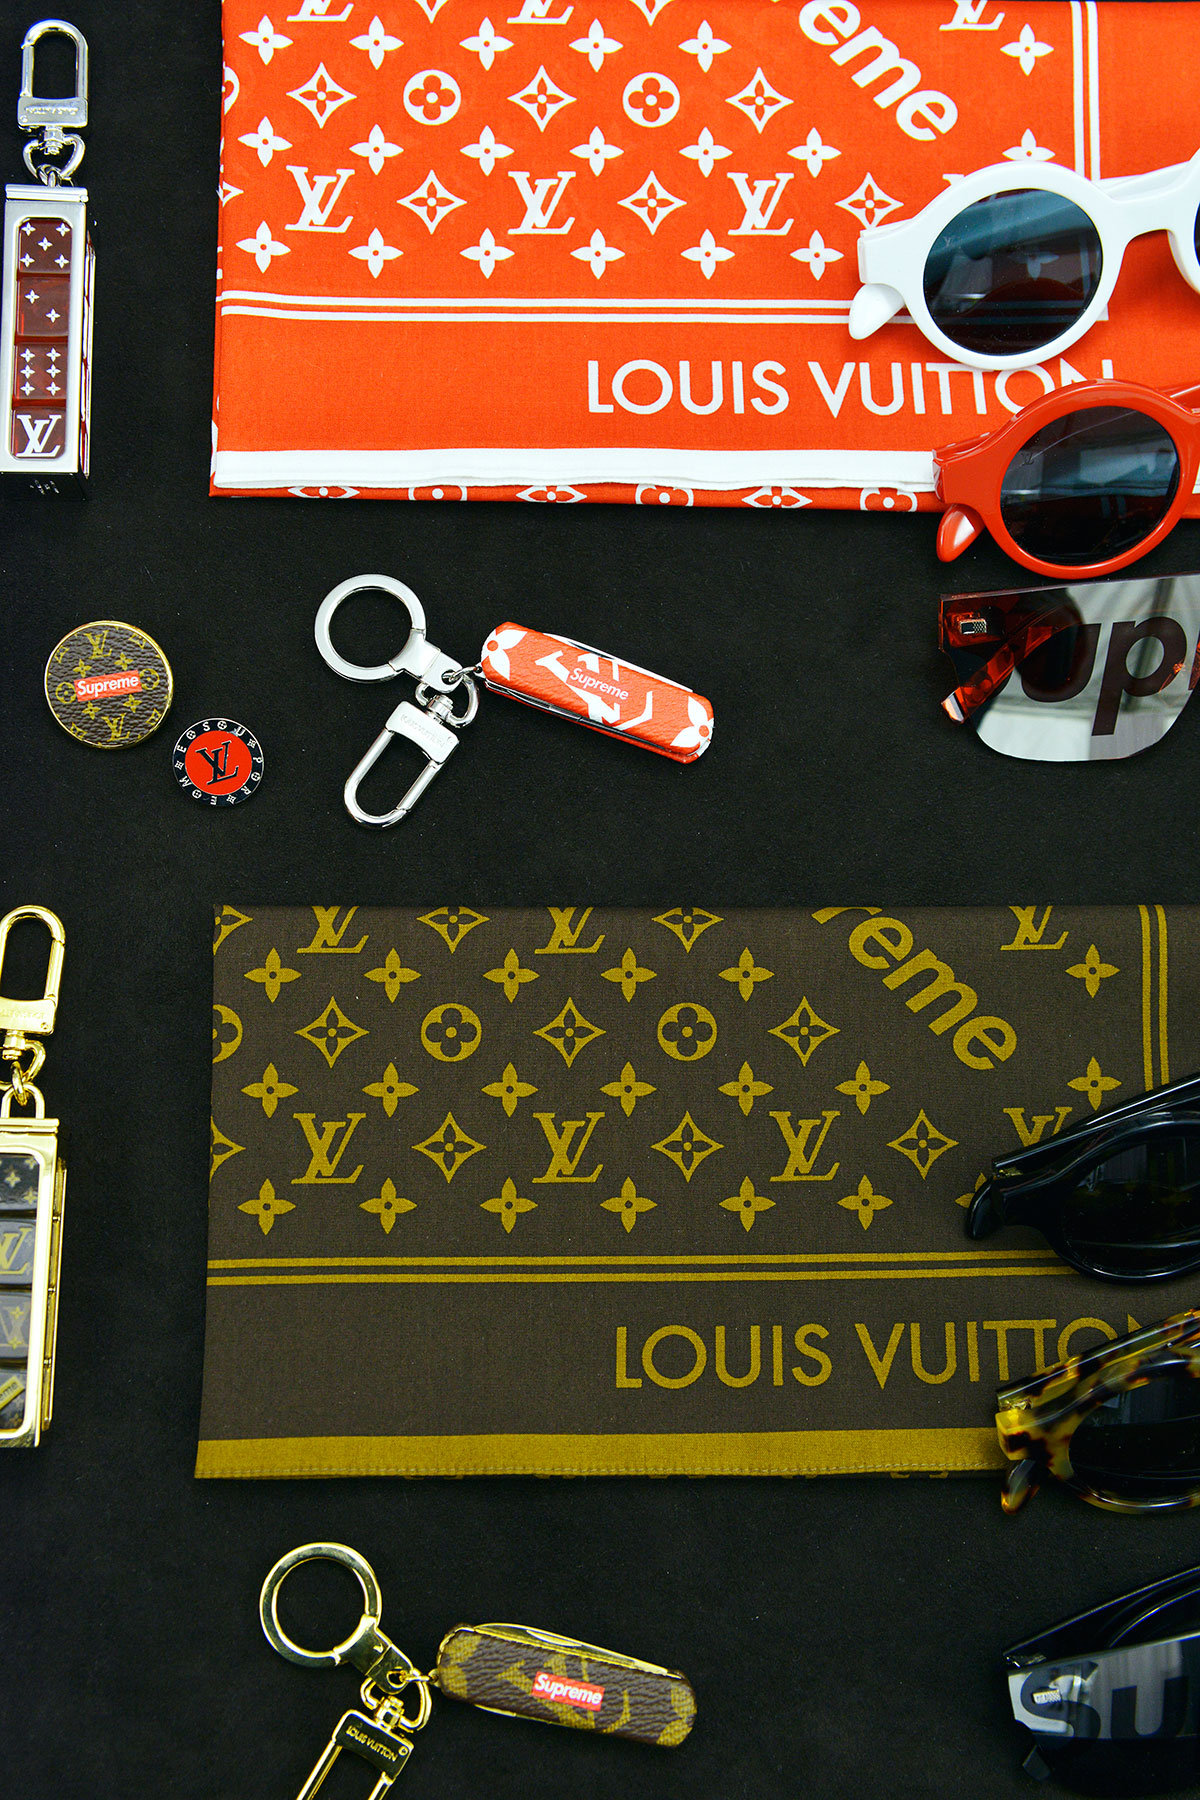 louisvuitton3.jpg